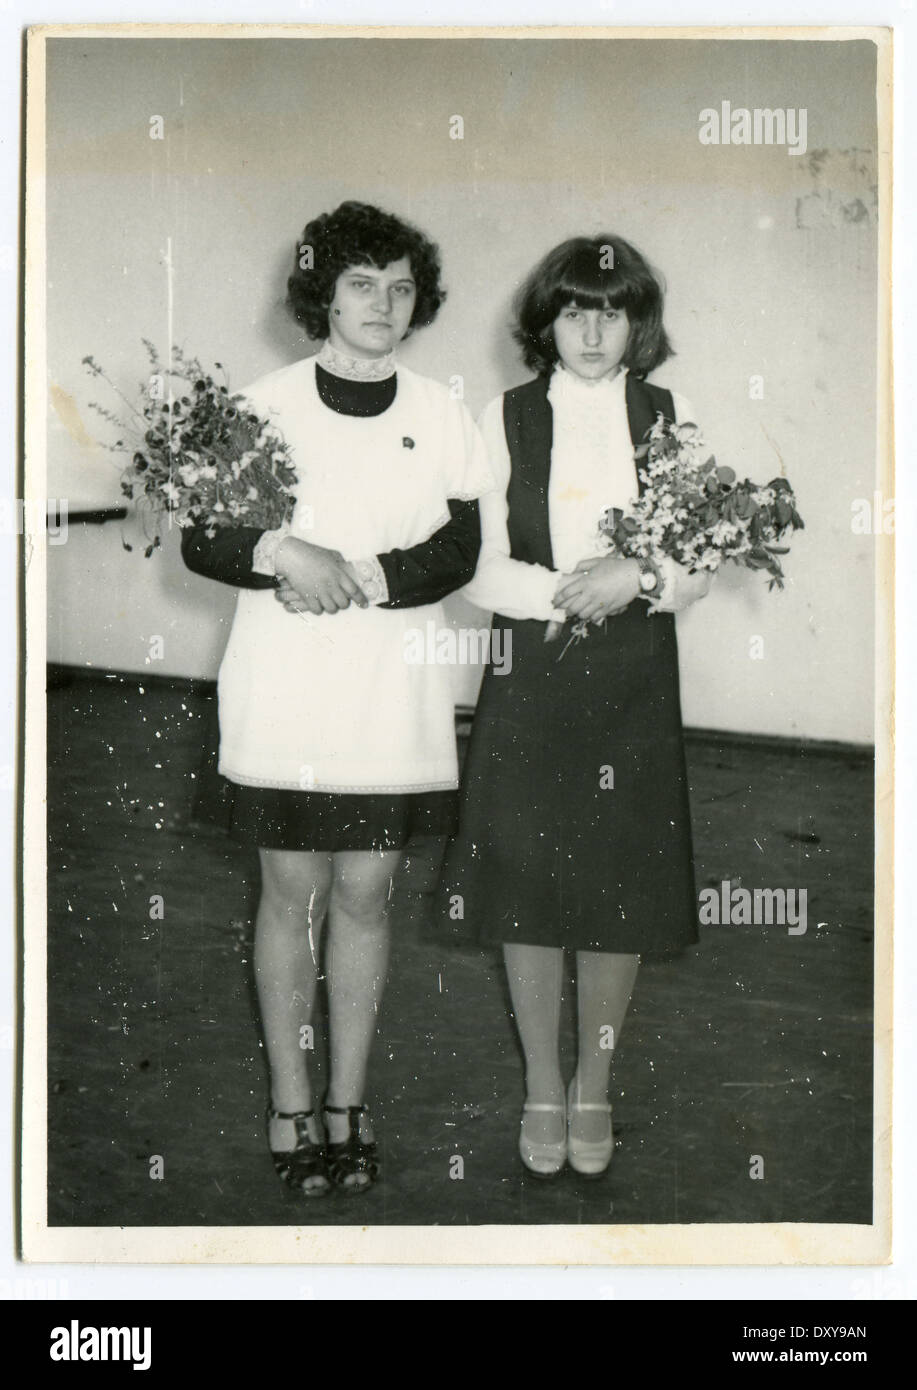 USSR - CIRCA 1970s : An antique photo shows two schoolgirl. Stock Photo